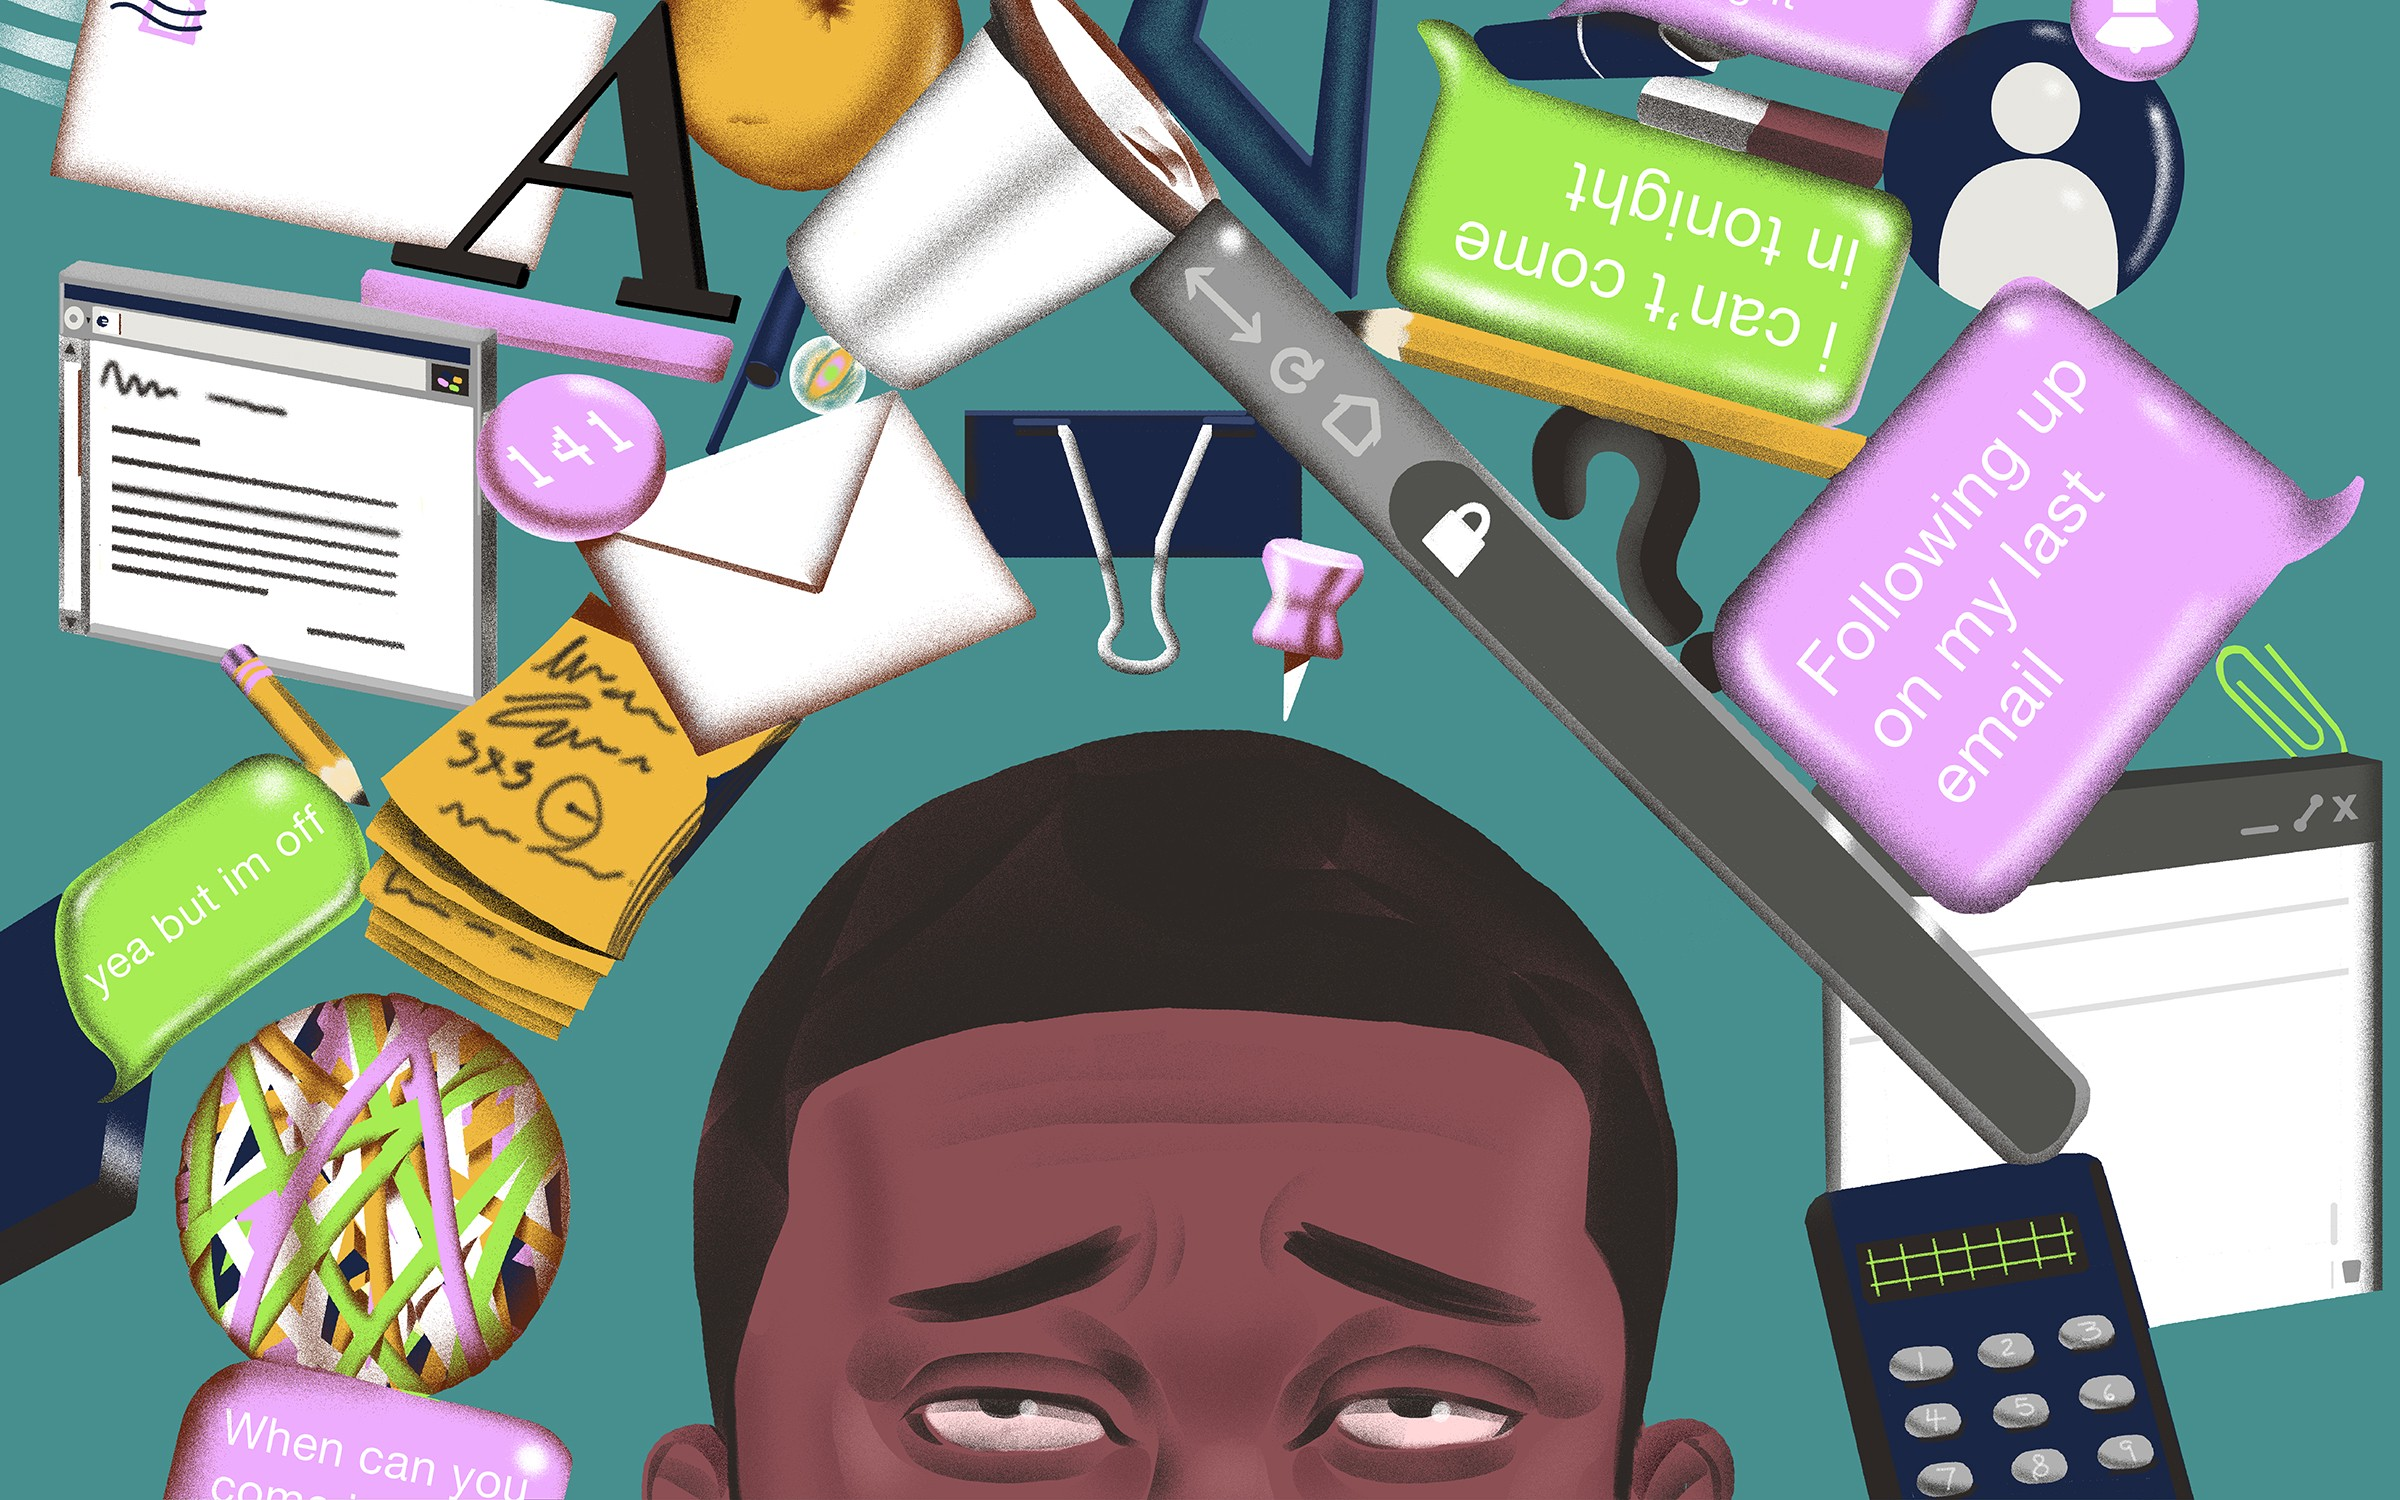 Illustration of an African American man looking up worried, as wor kreminders like emails, texts, and messages surround him.